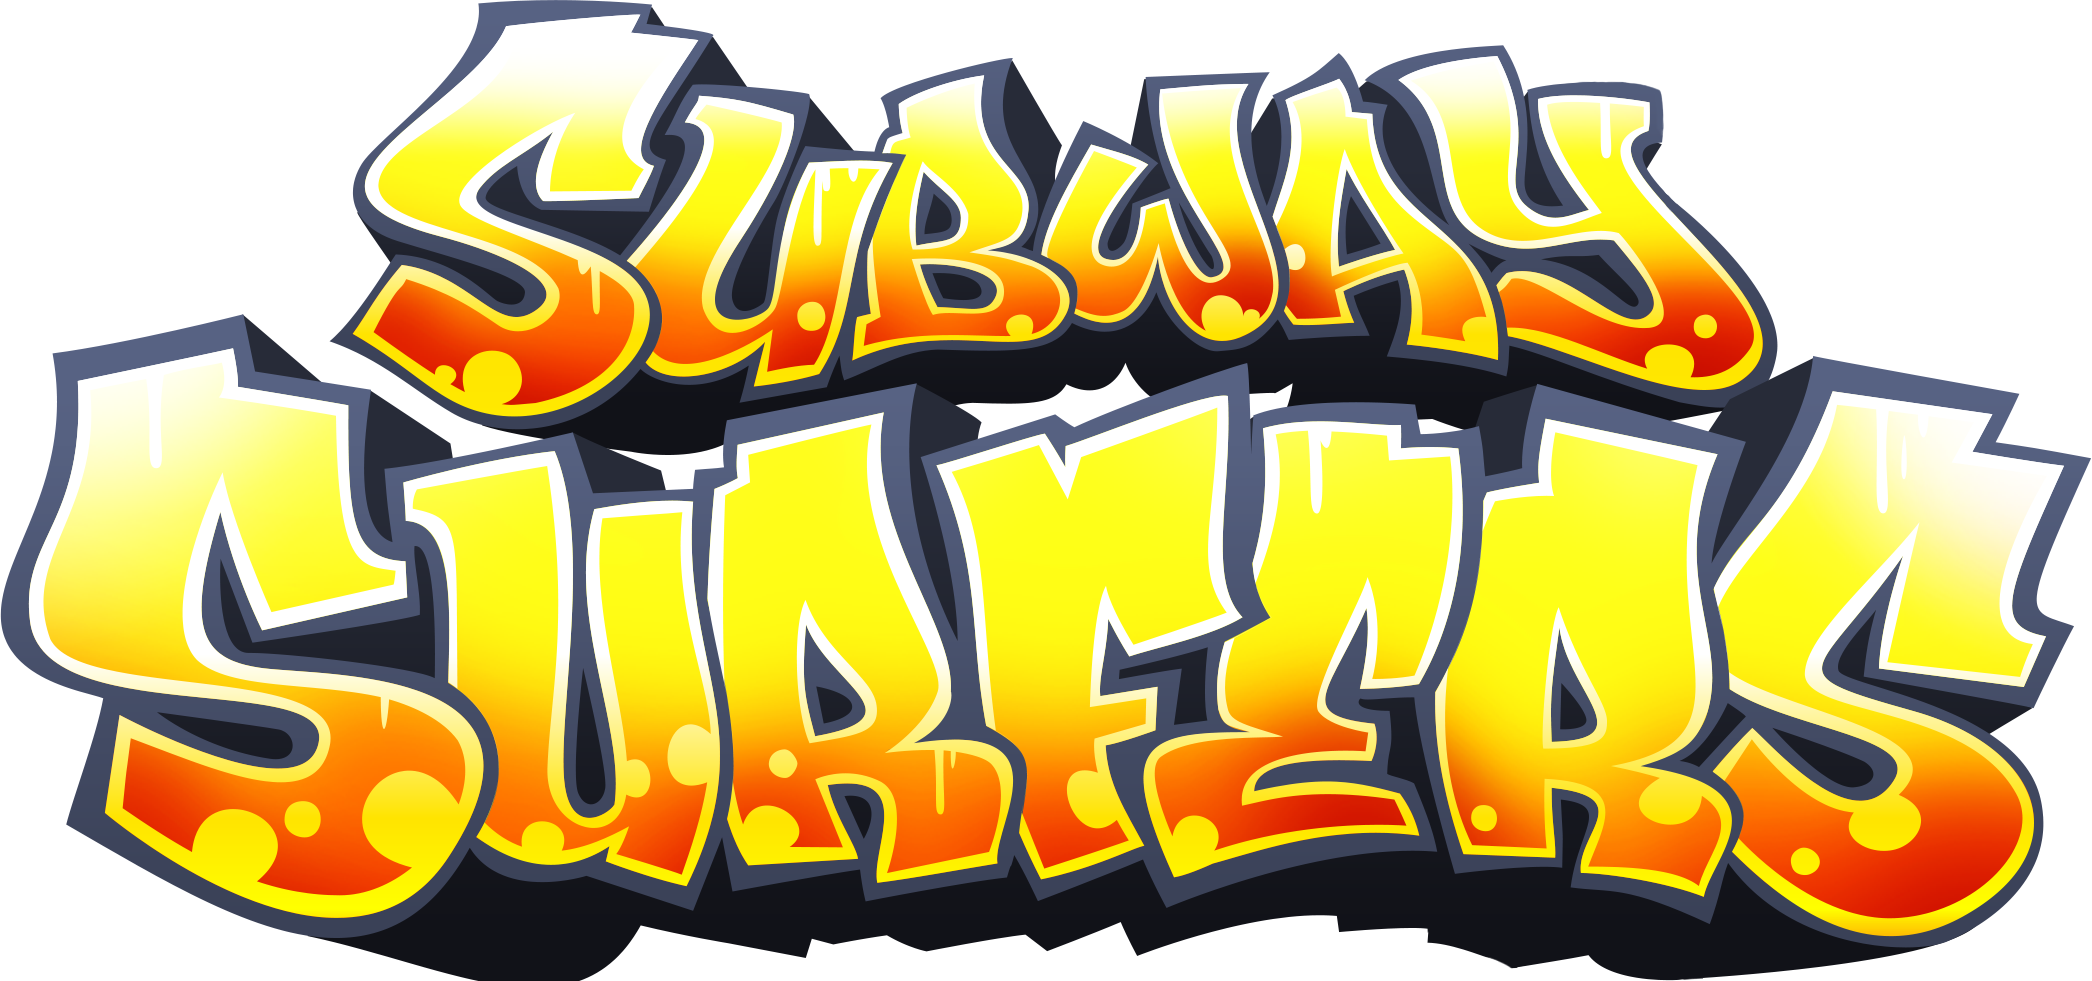 subway surfers logo png #4301